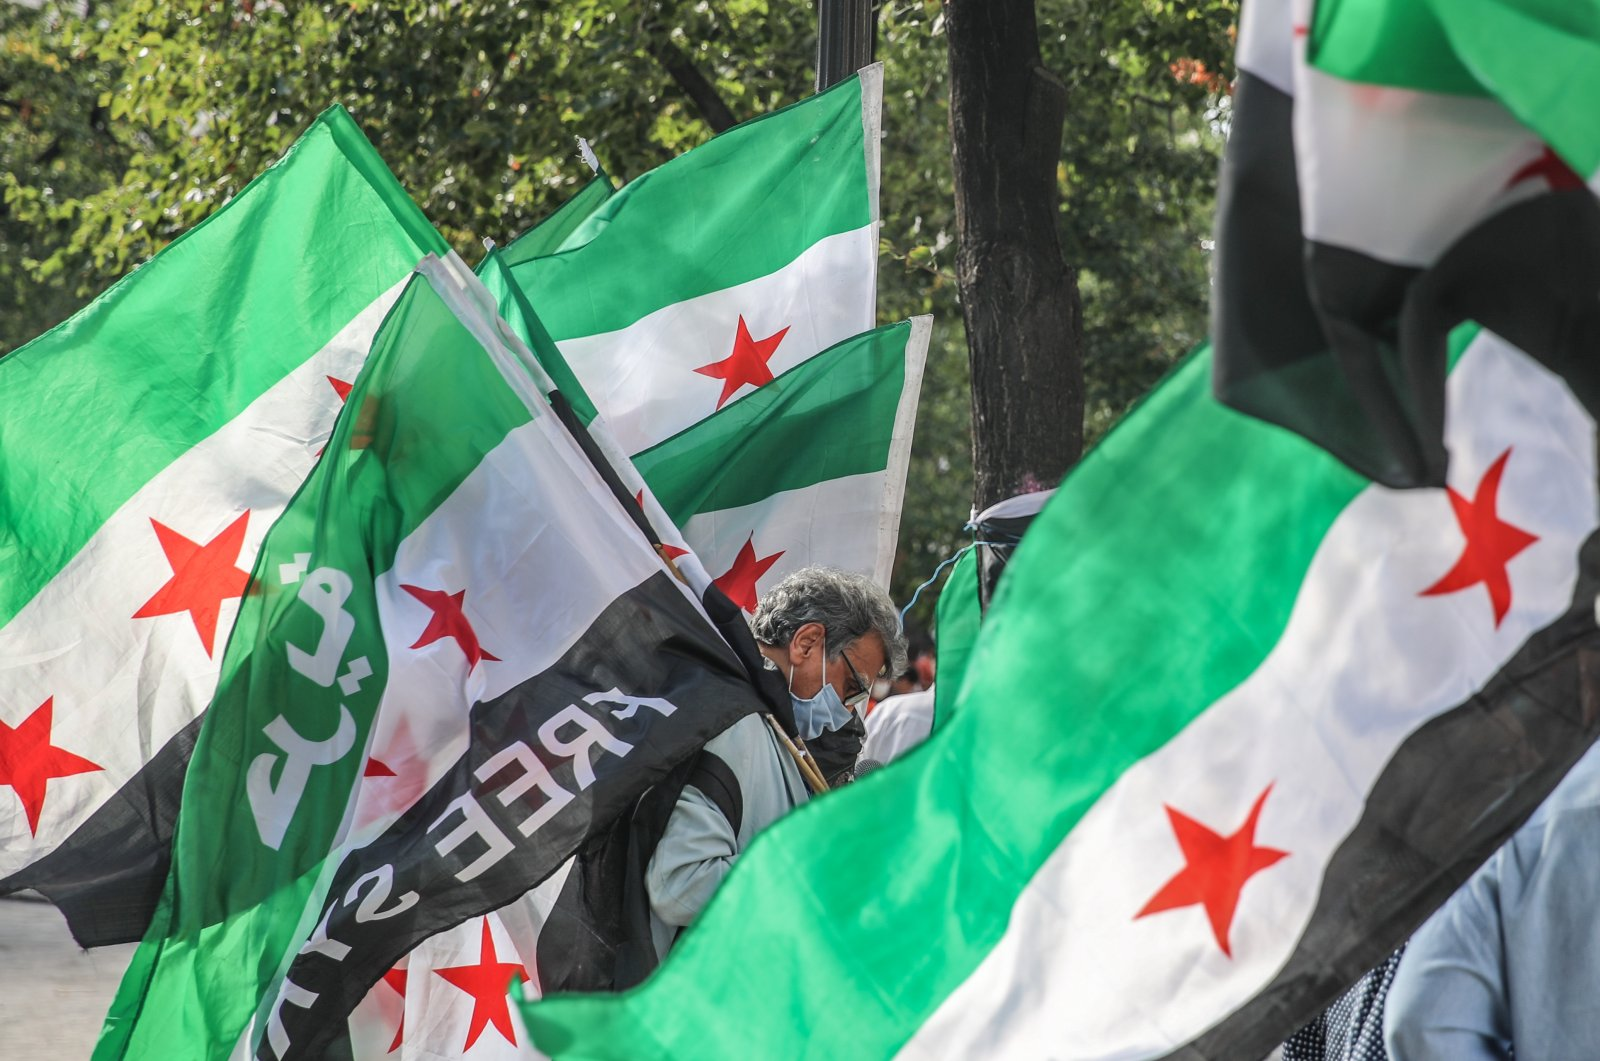 A Syrian activist carries the Syrian Revolution flag during a rally for the anniversary of 2013 Chemical Attack on Ghota, at Fontaine des Innocents in theLes Hallesdistrict in the1st arrondissementofParis,France. 21 August 2020. (EPA Photo)